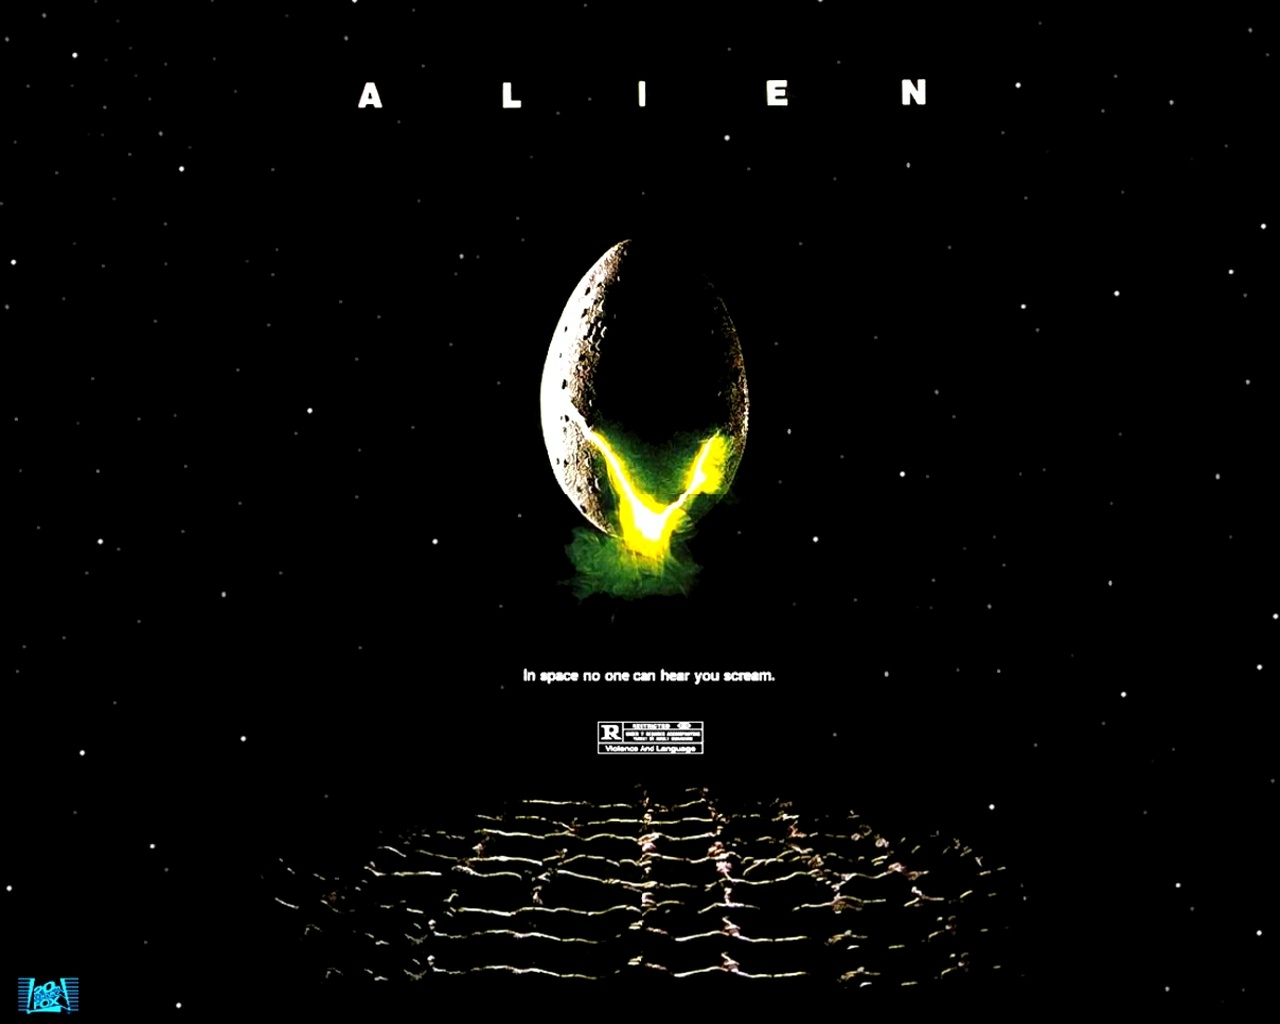 ALIEN images Alien HD wallpaper and background photos 1280x1024